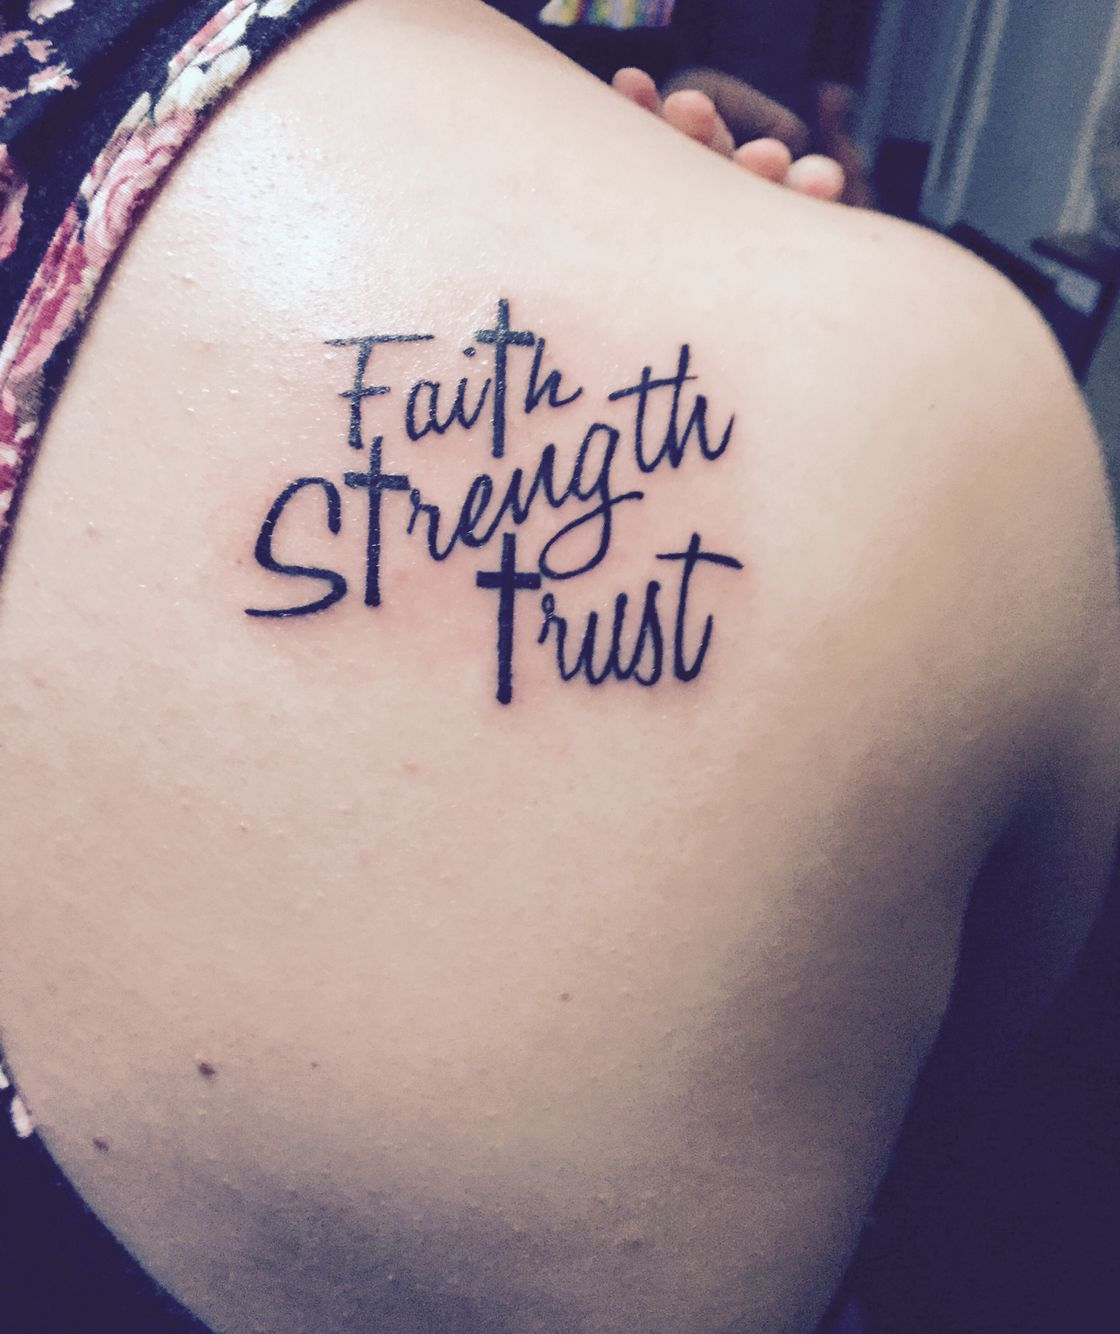 My First Tattoo Represents My Time Getting Through: Faith Strength Trust With Crosses. First Tattoo! Love It